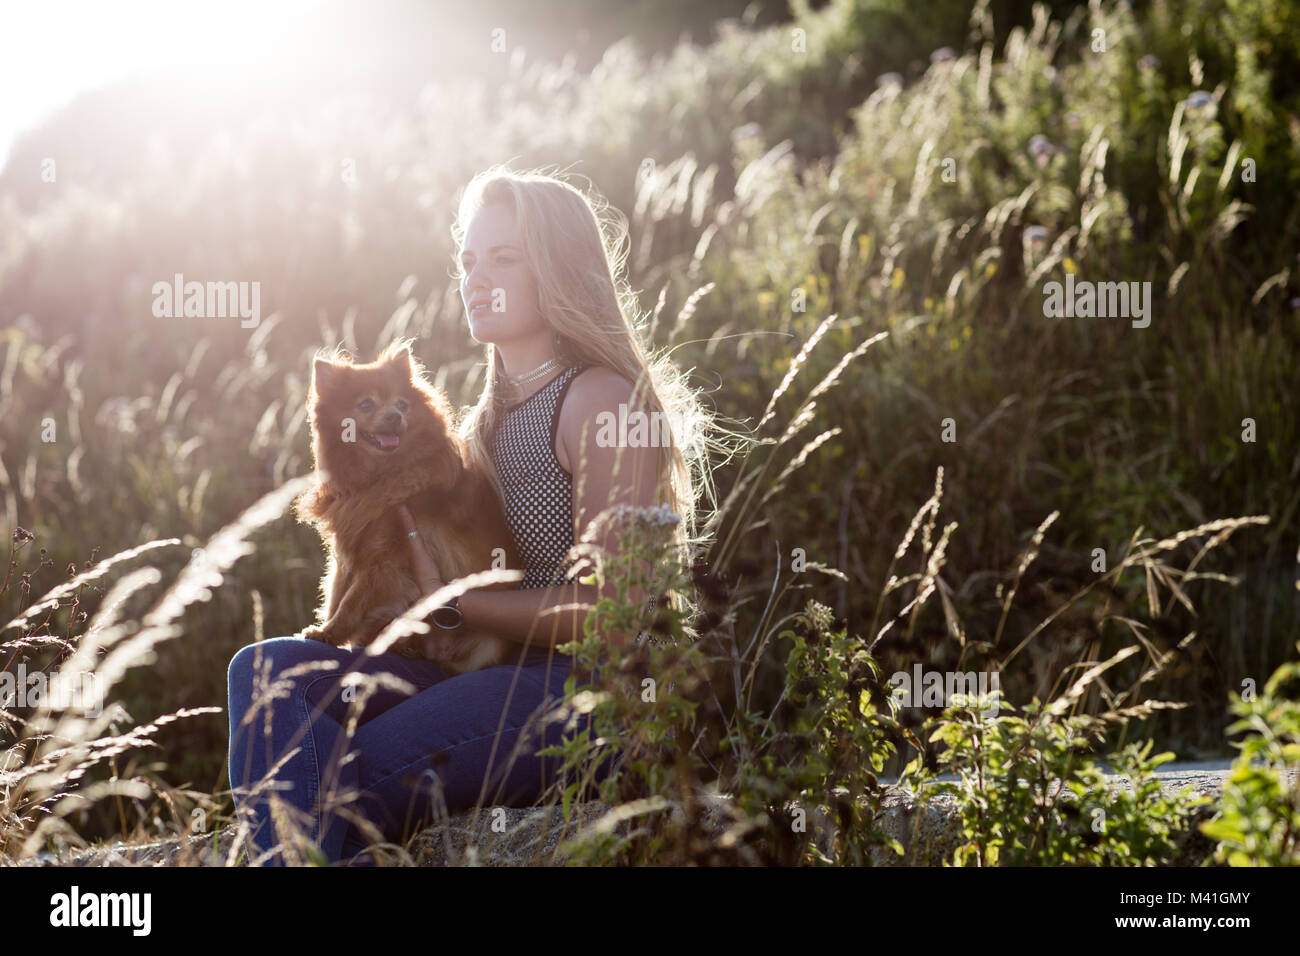 Young Female cuddling her pet dog in countryside - Stock Image